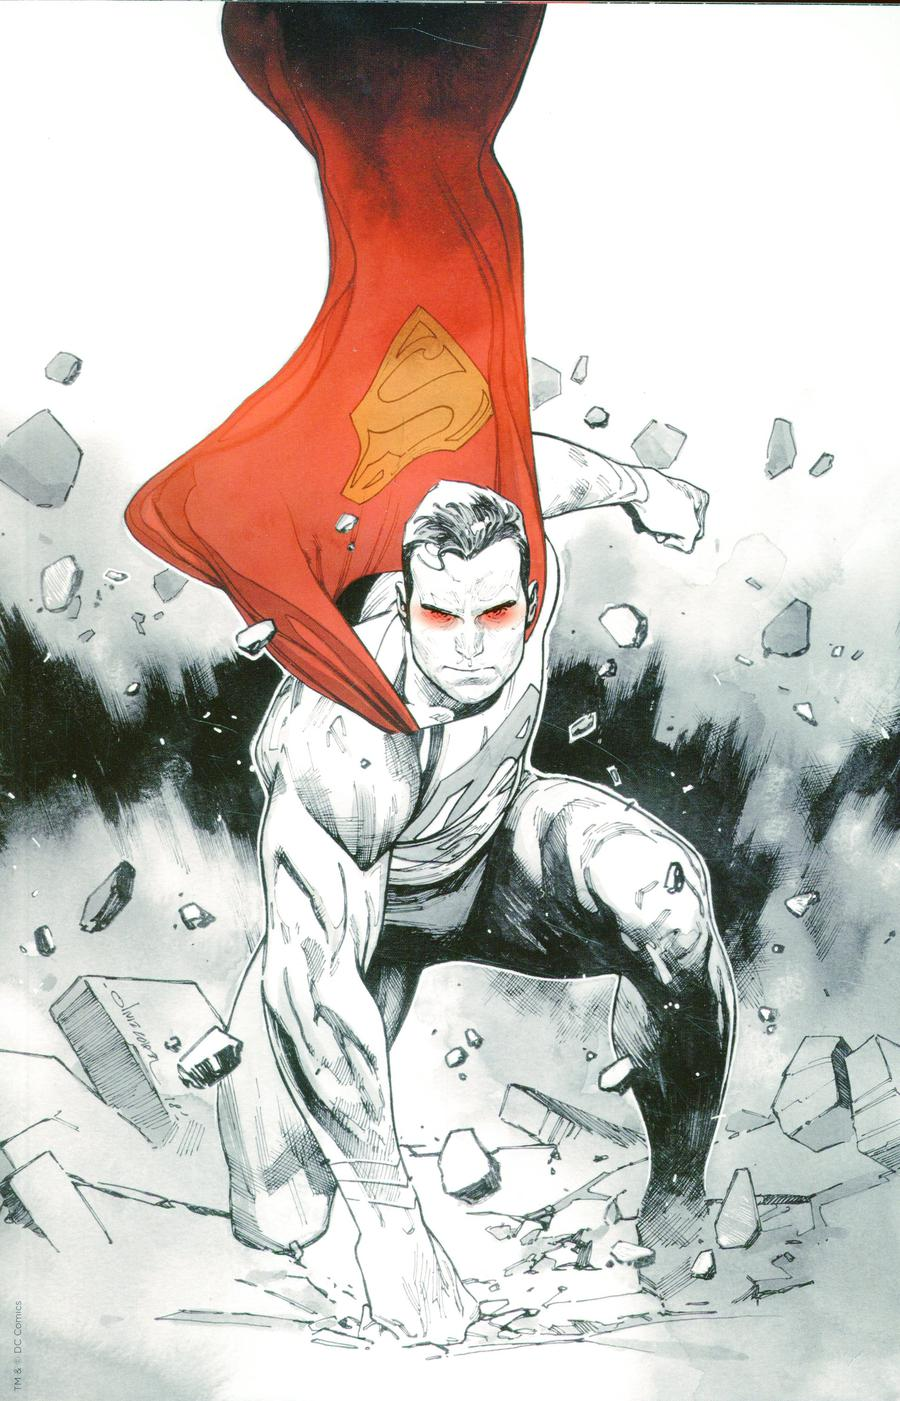 Action Comics Vol 2 #1000  Midtown Exclusive Olivier Coipel Virgin Black & White With Spot Color Variant Cover Signed By Peter J Tomasi